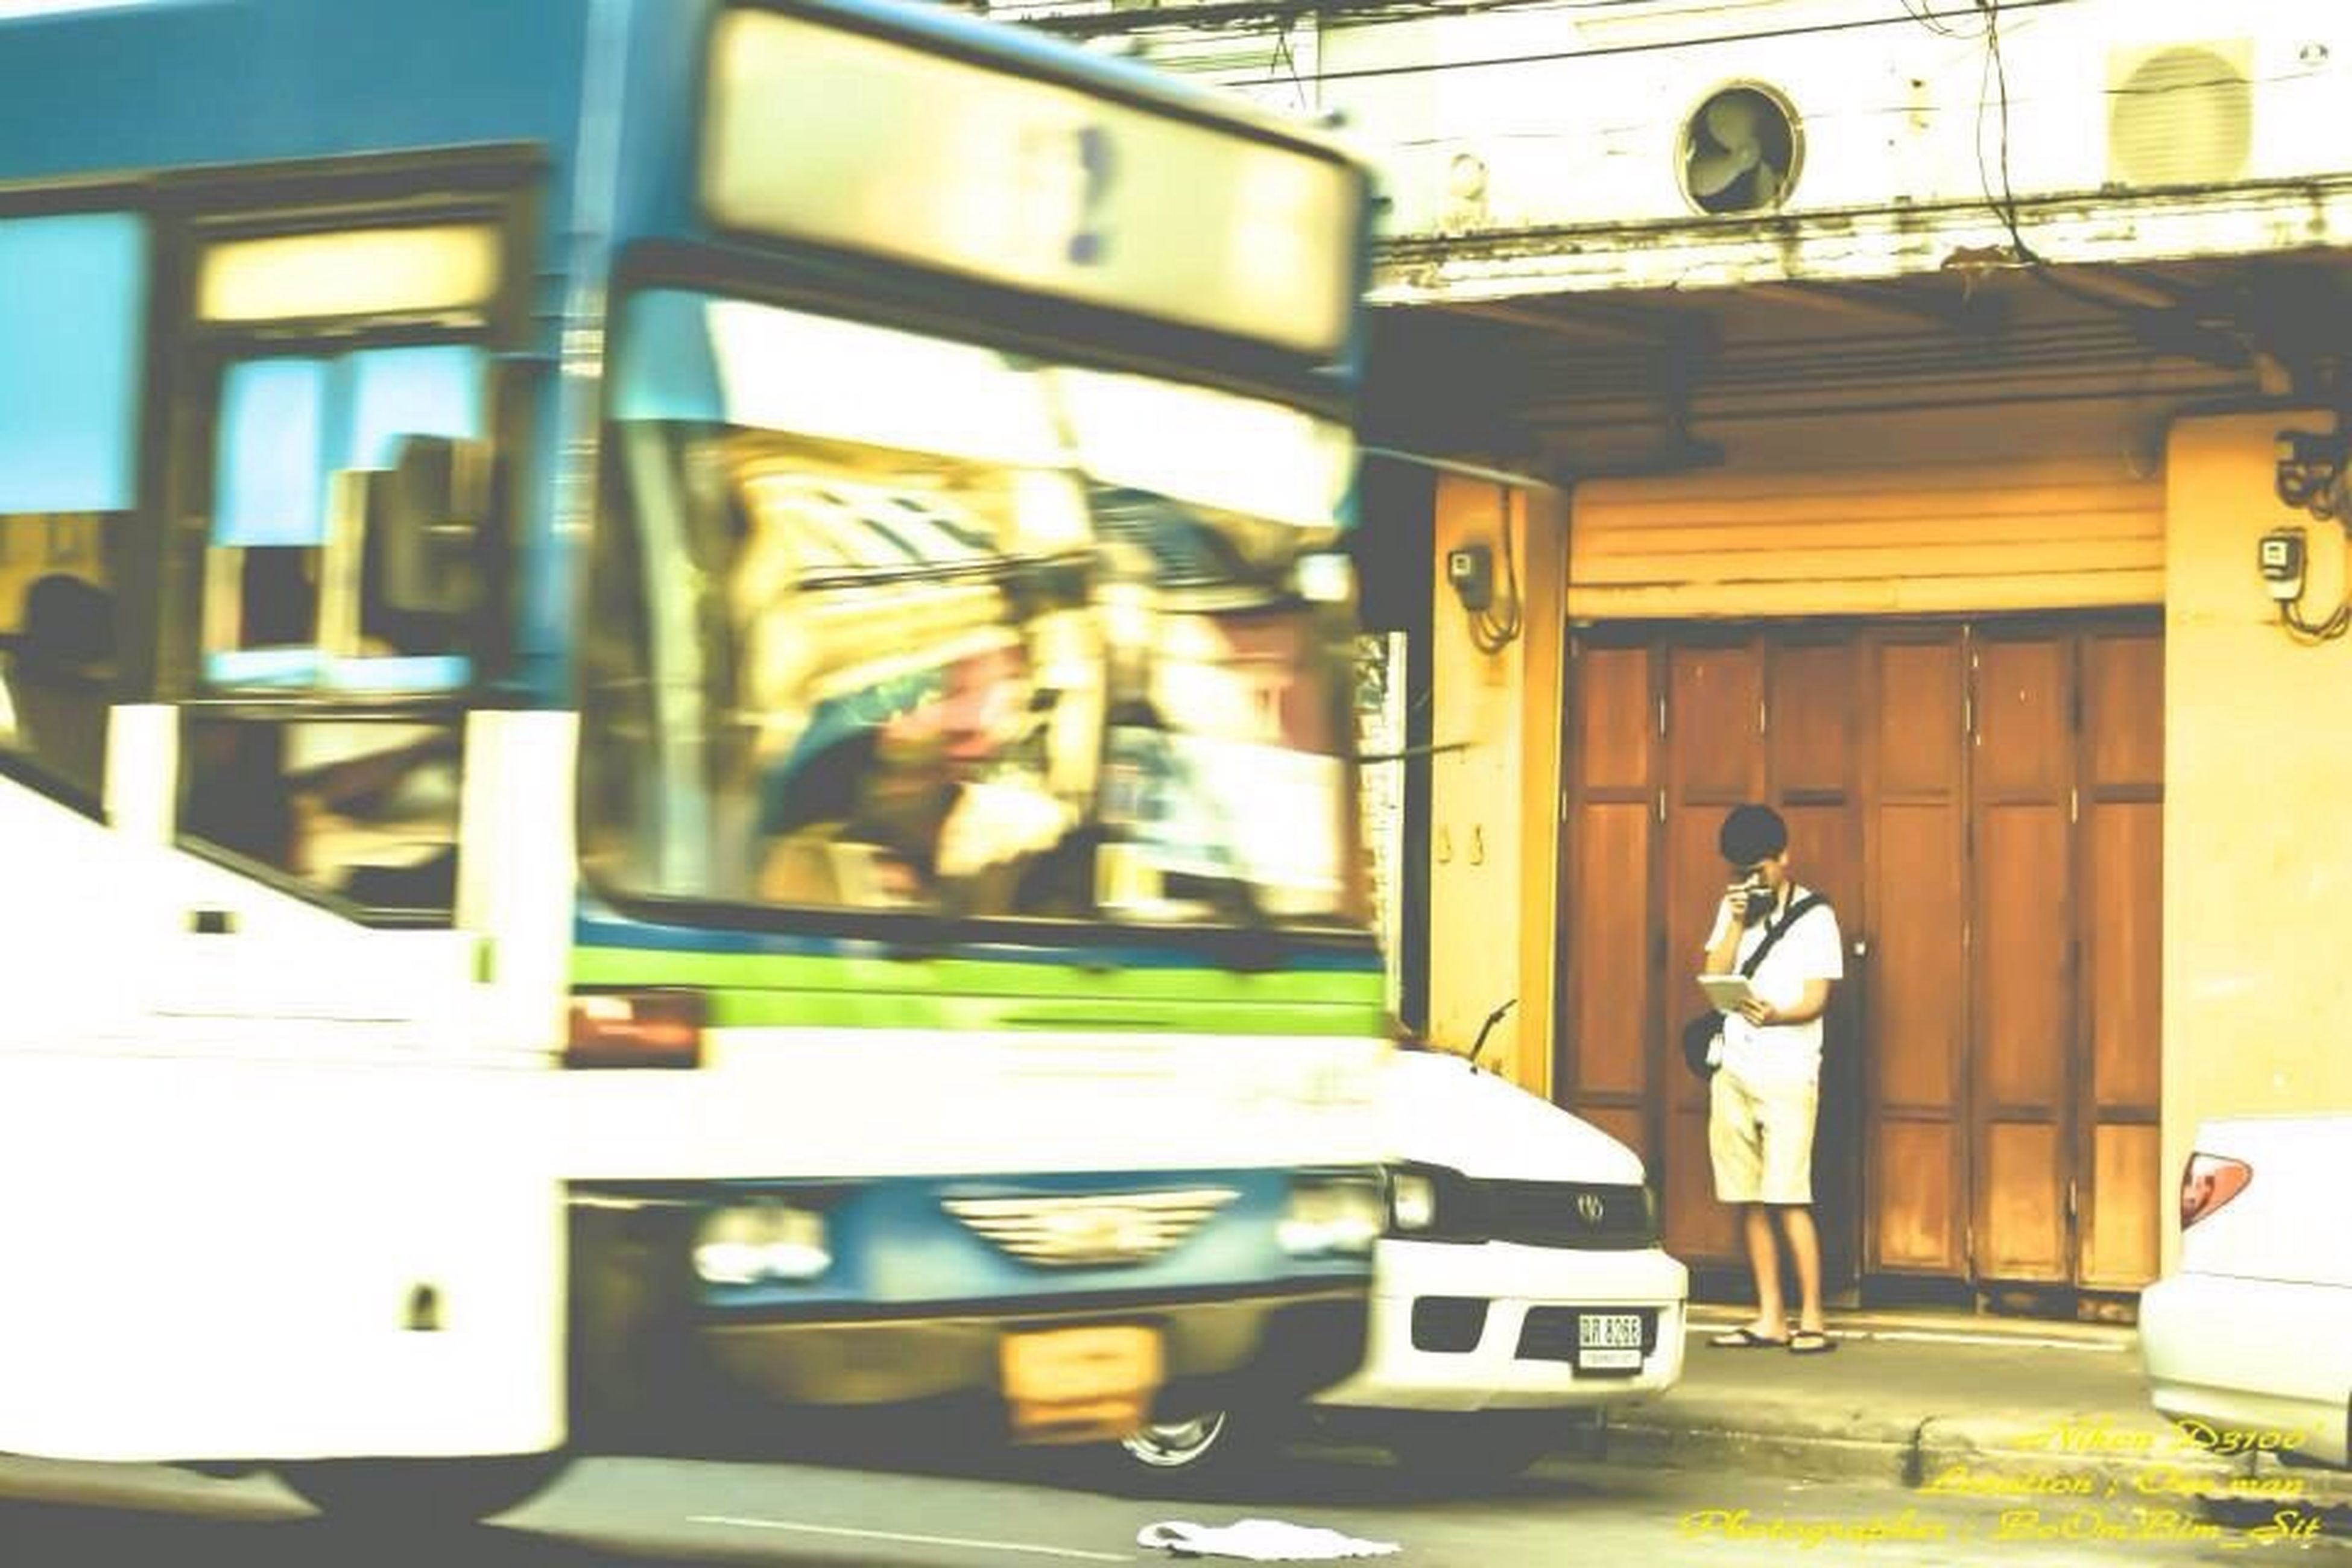 indoors, transportation, men, public transportation, lifestyles, mode of transport, person, leisure activity, architecture, casual clothing, rear view, travel, incidental people, built structure, land vehicle, window, passenger